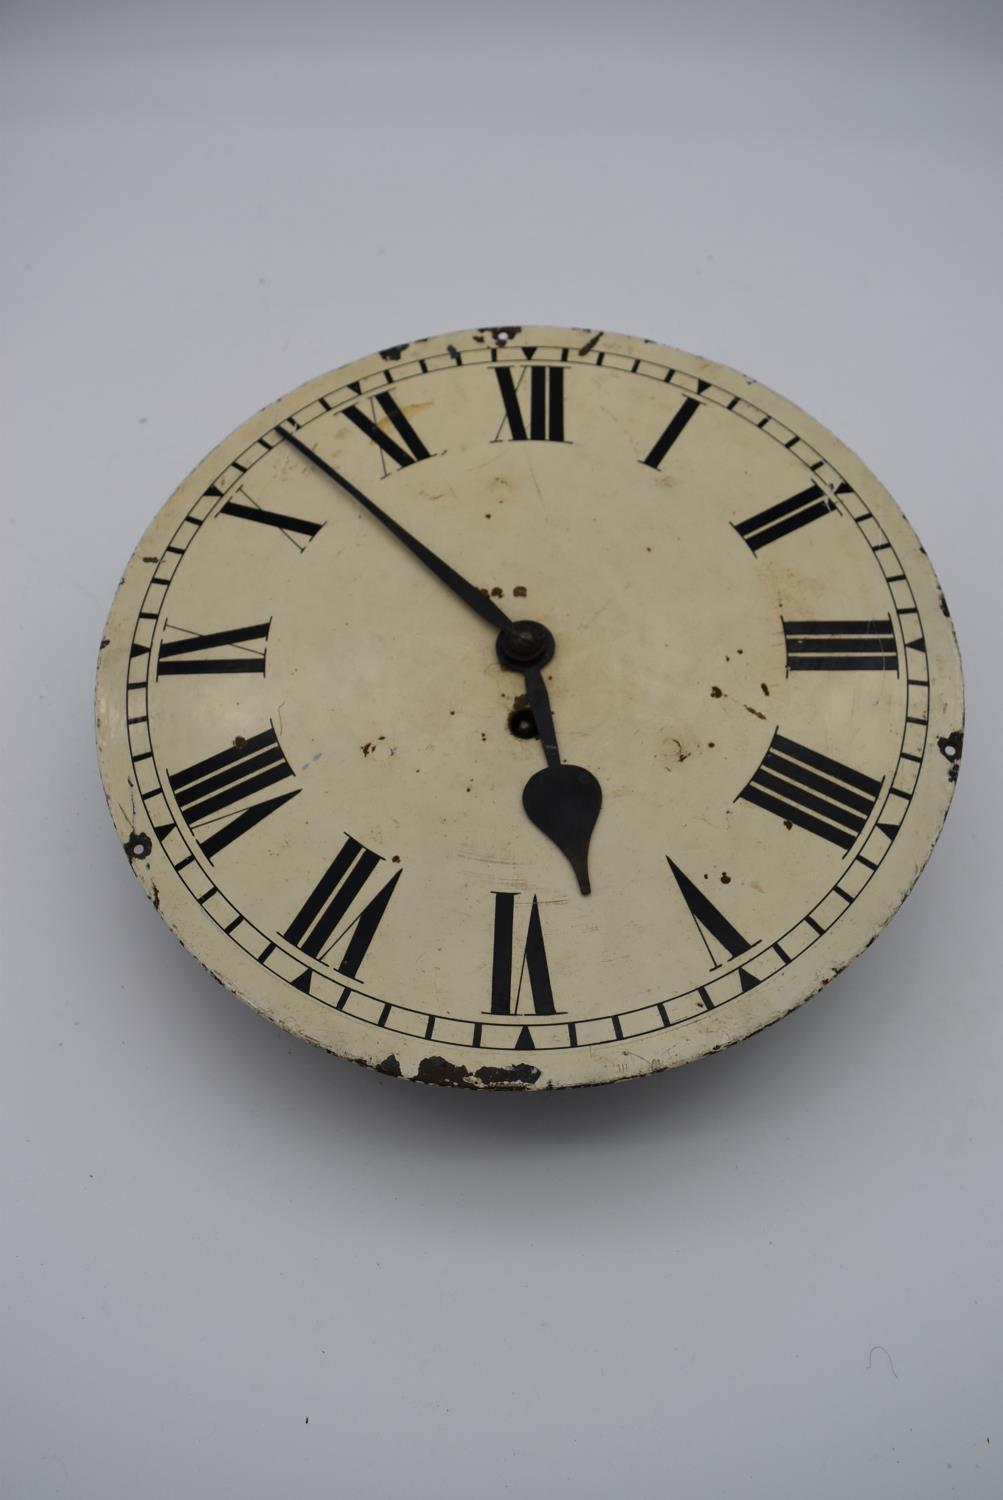 A 19th century mahogany cased drop dial wall clock, Geo Hammer and Co, a dial clock face and - Image 9 of 10